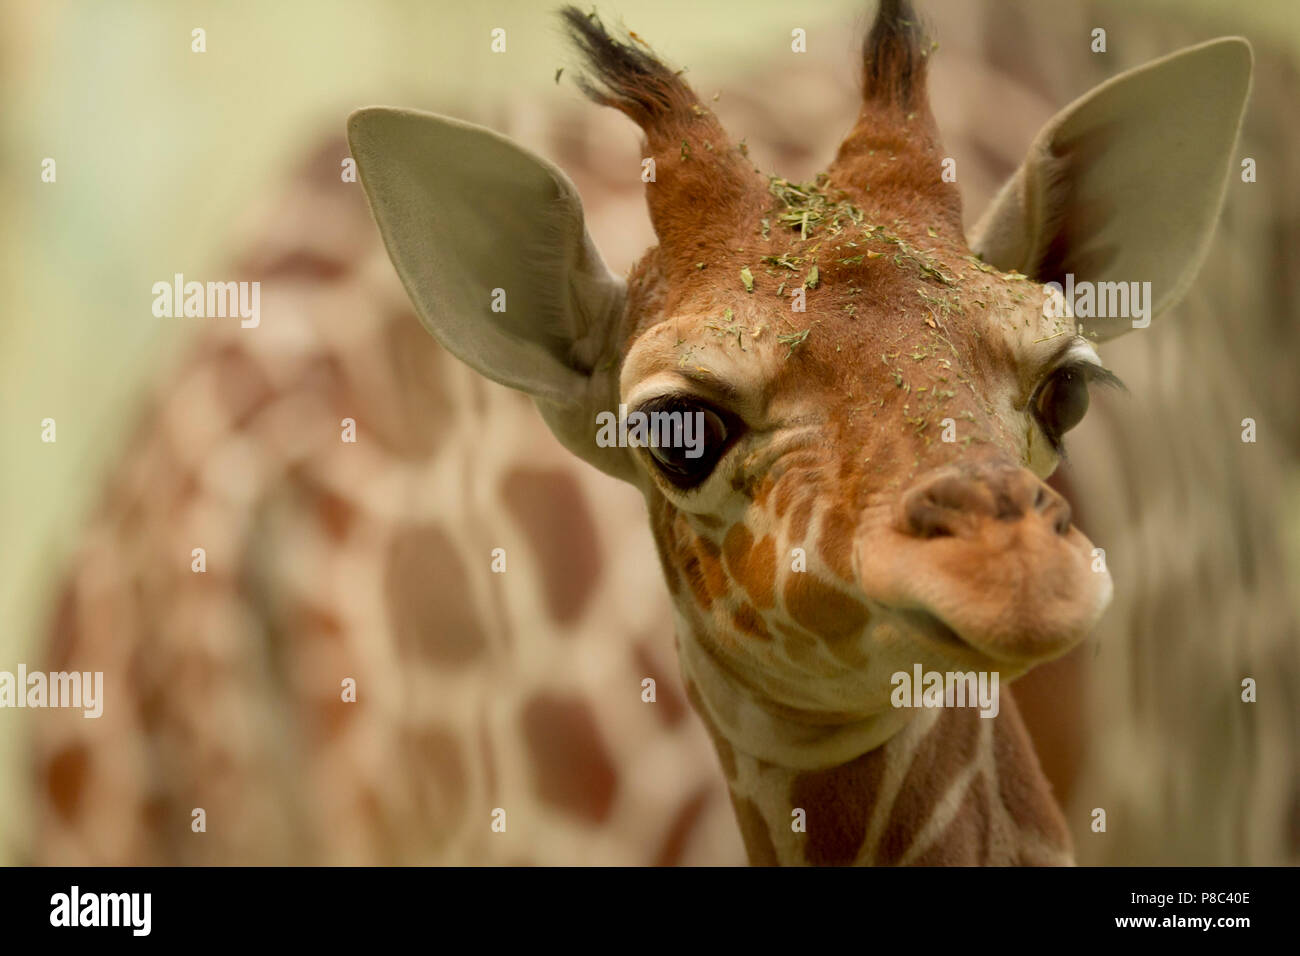 Cutest baby giraffe portrait - Stock Image